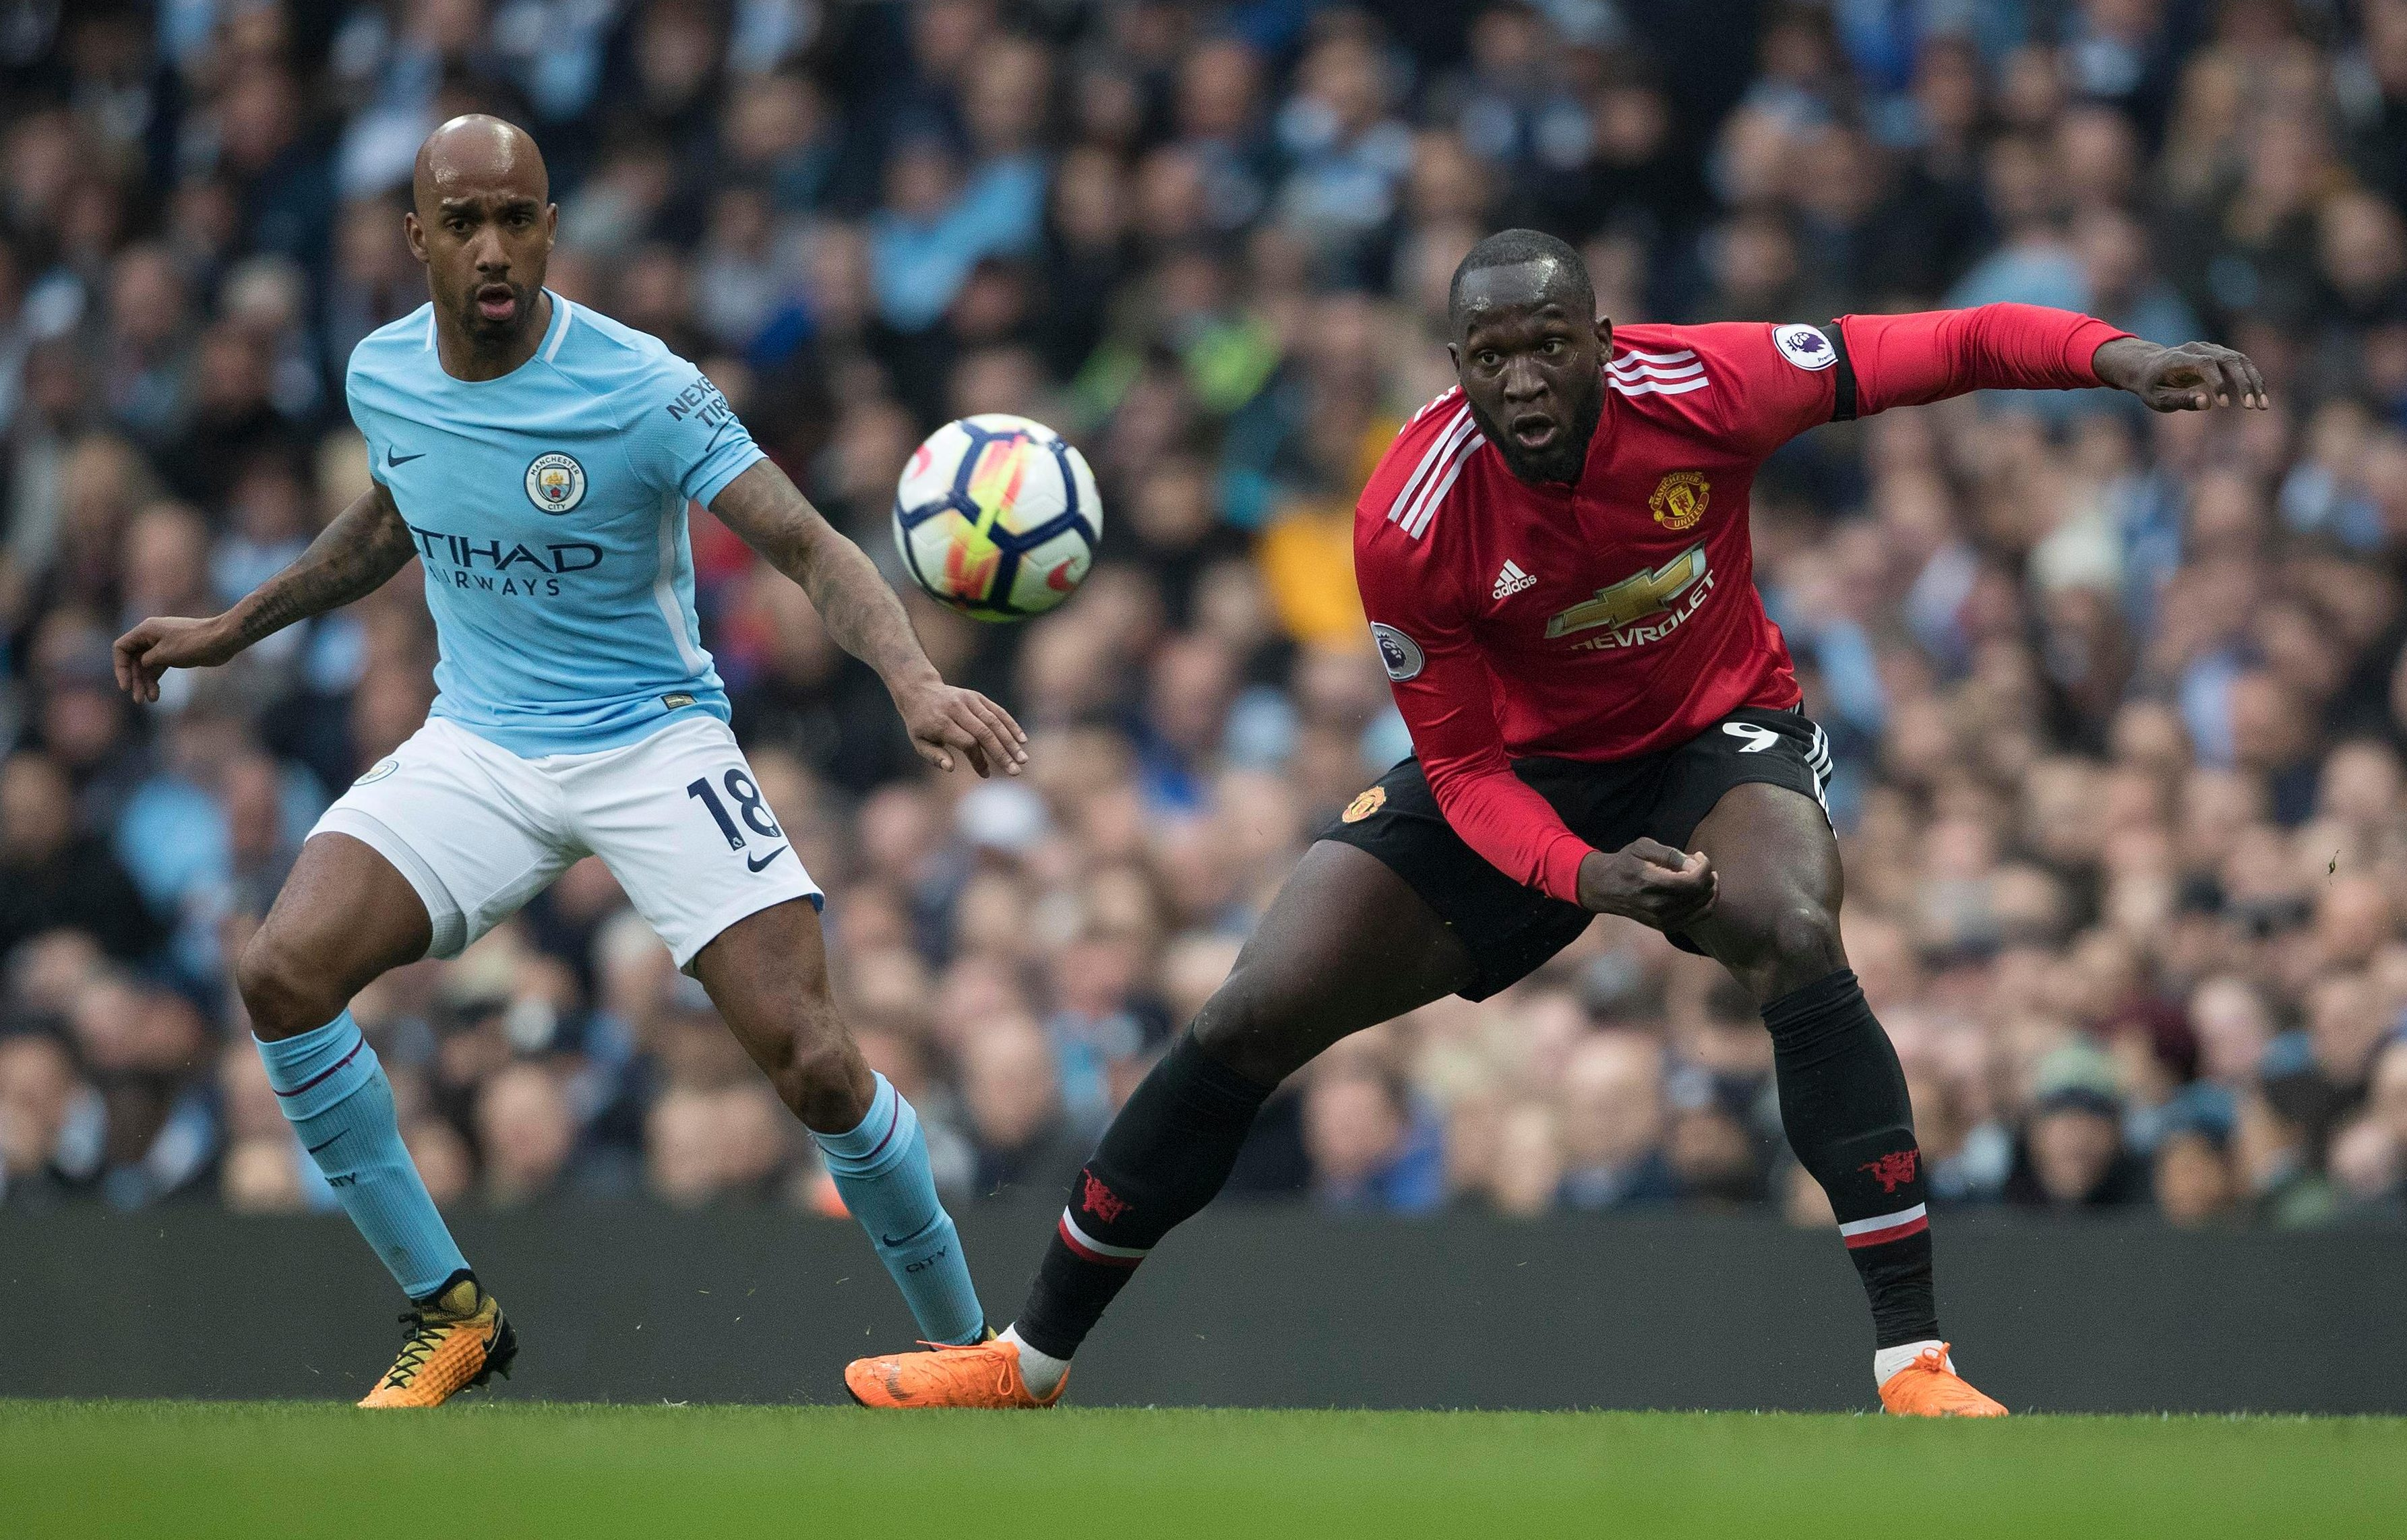 Fabian Delph played 90 minutes for City at left-back against United